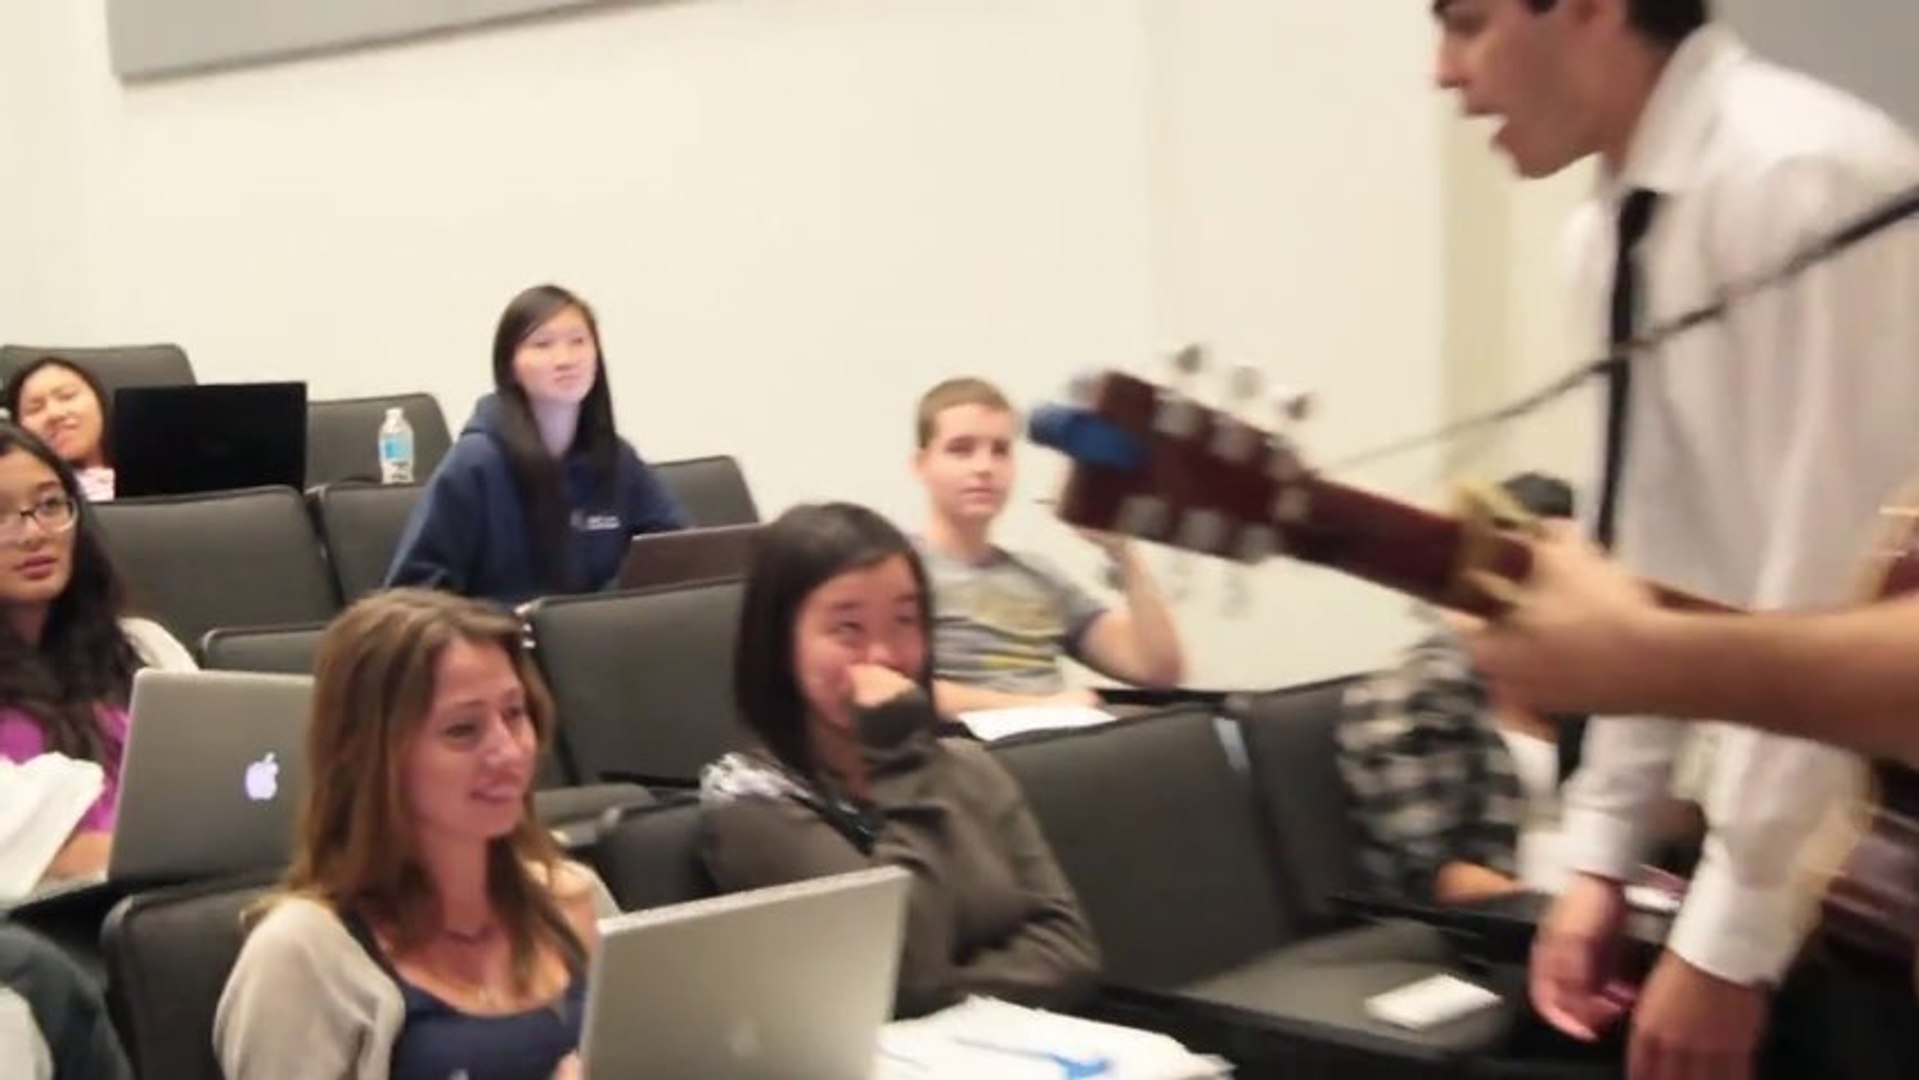 Serenading Random Girls During University Lecture, With A Guitar and Flowers